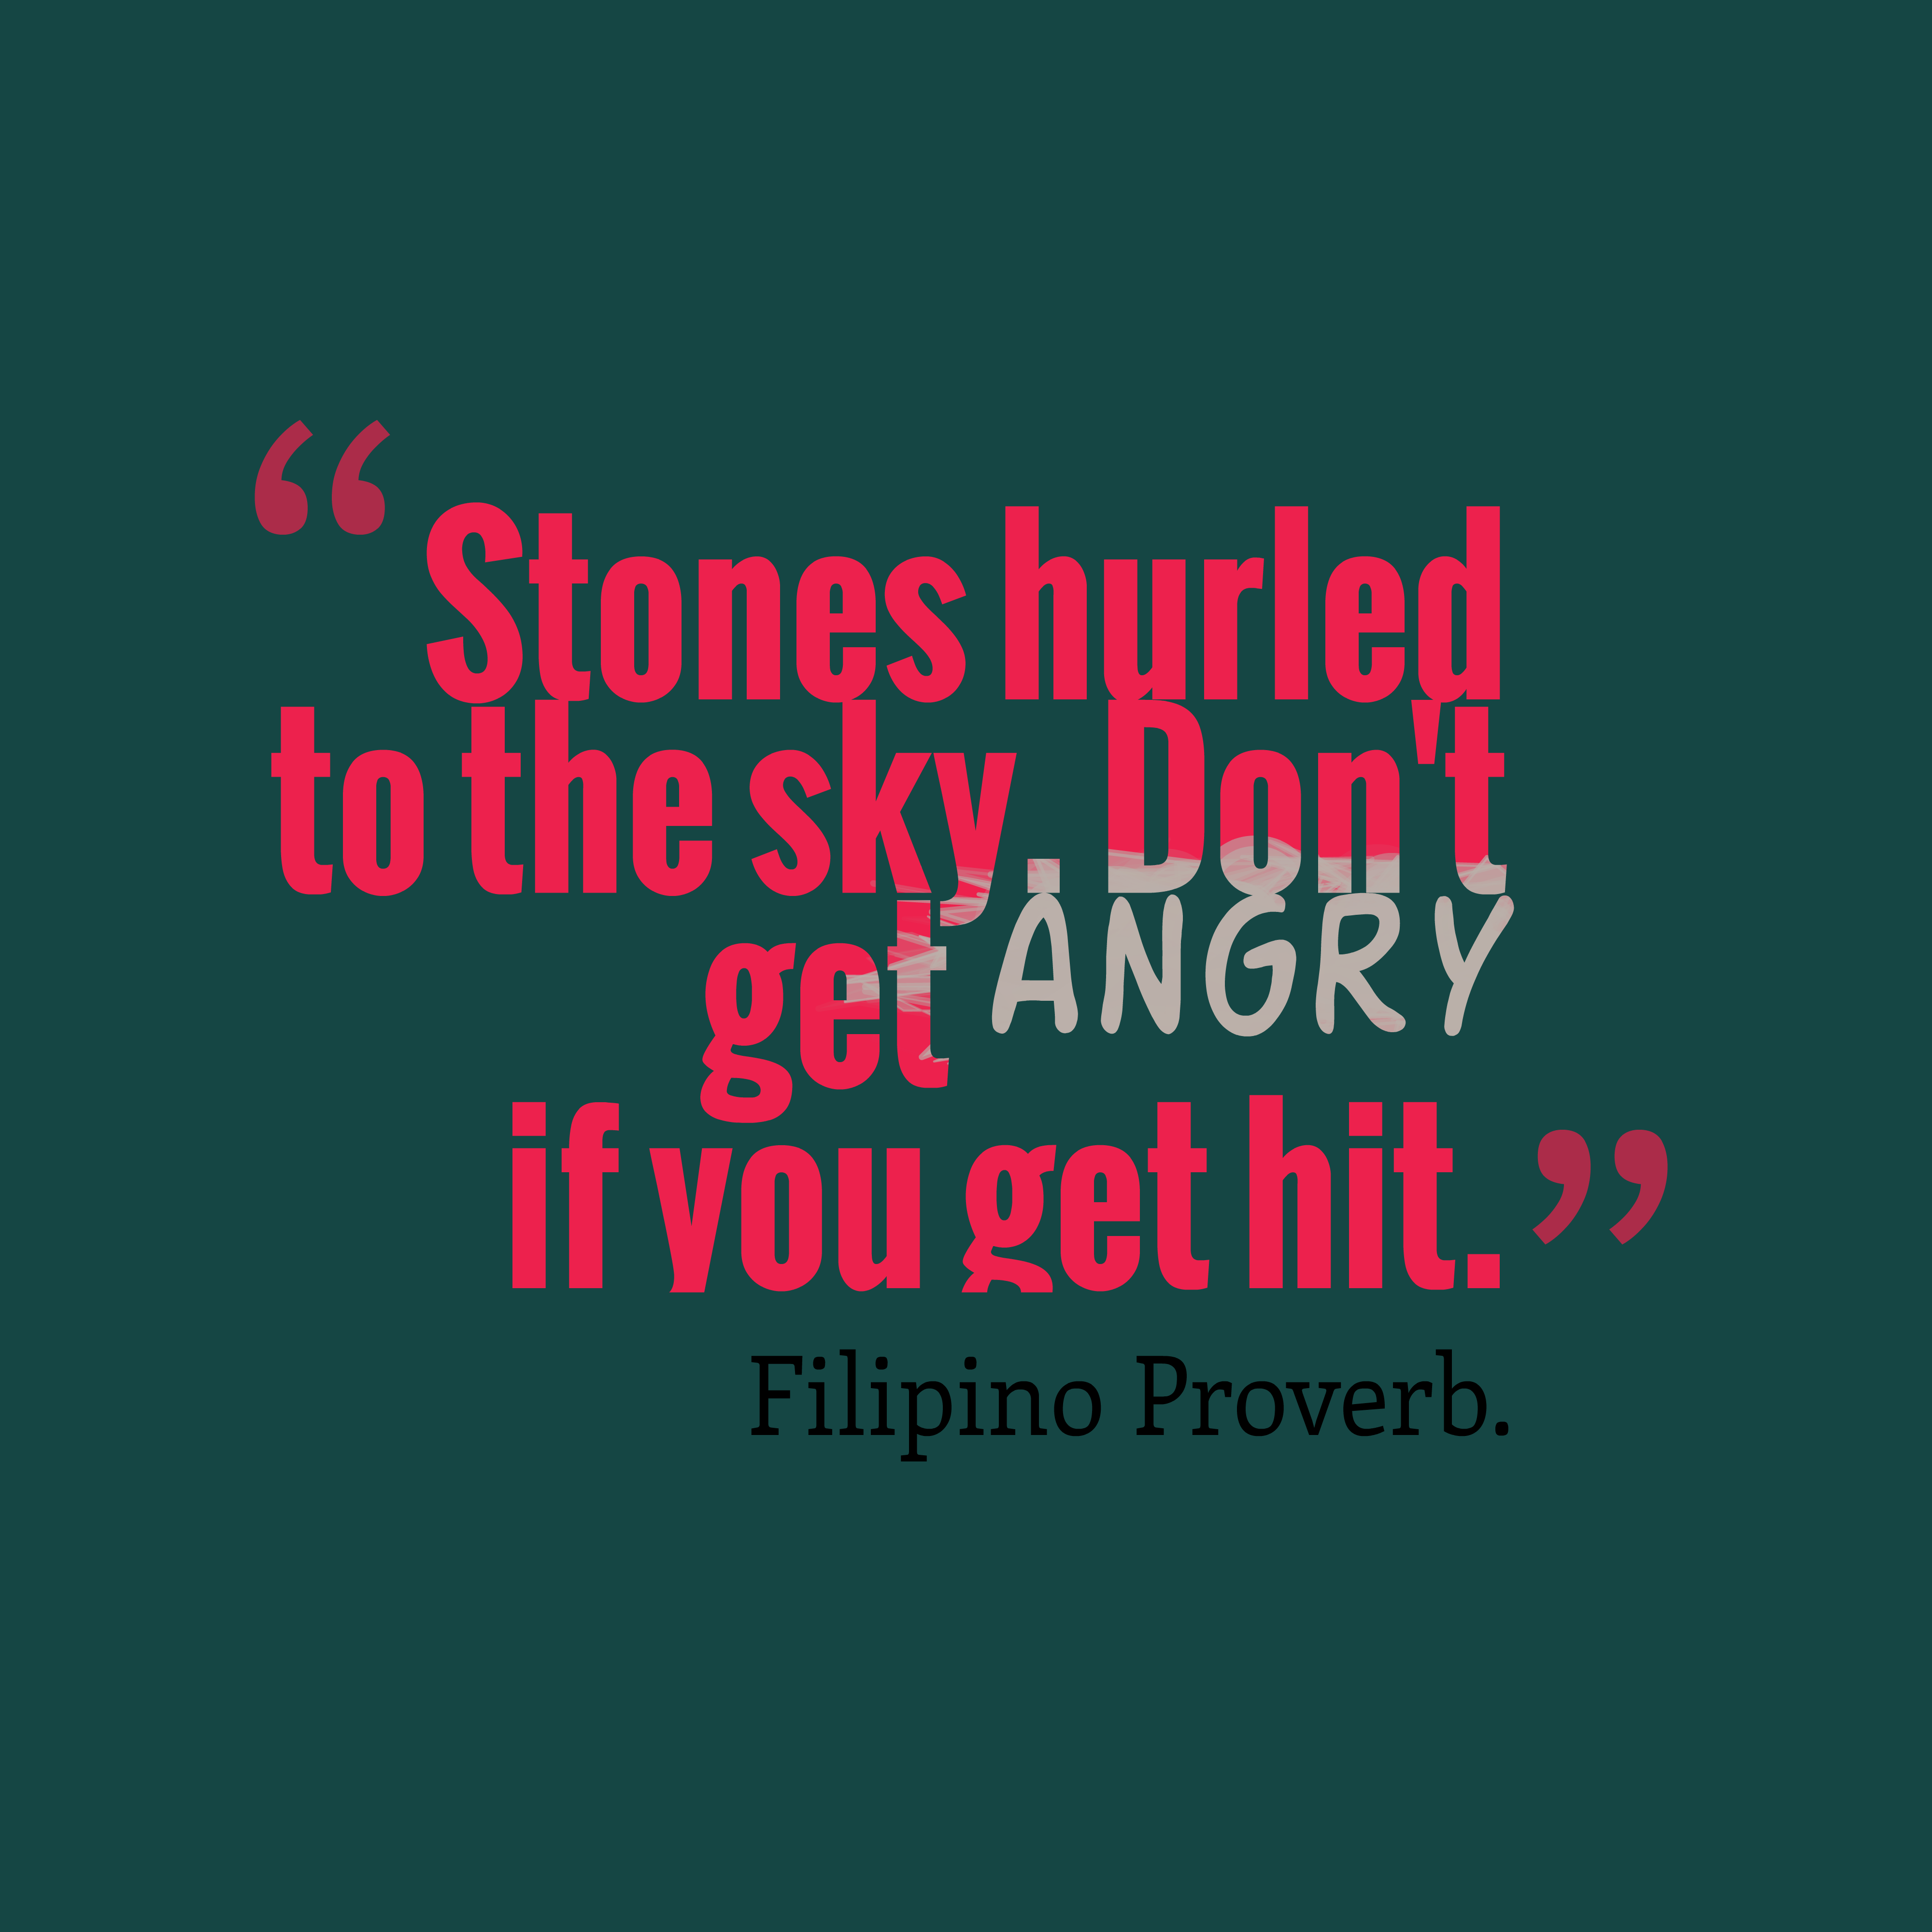 Quotes image of Stones hurled to the sky. Don't get angry if you get hit.